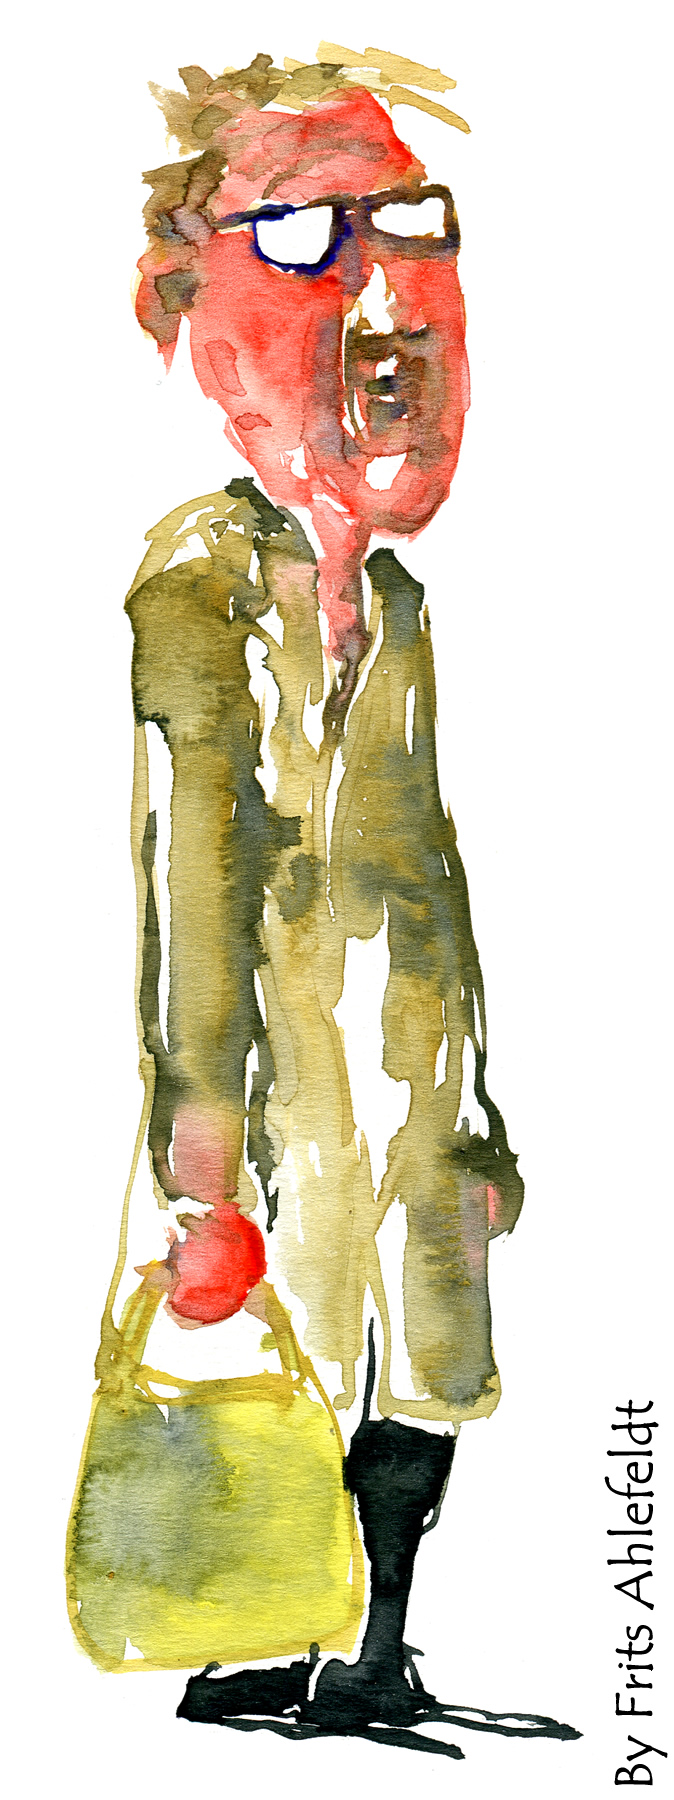 Man in cottoncoat with bag. Watercolor